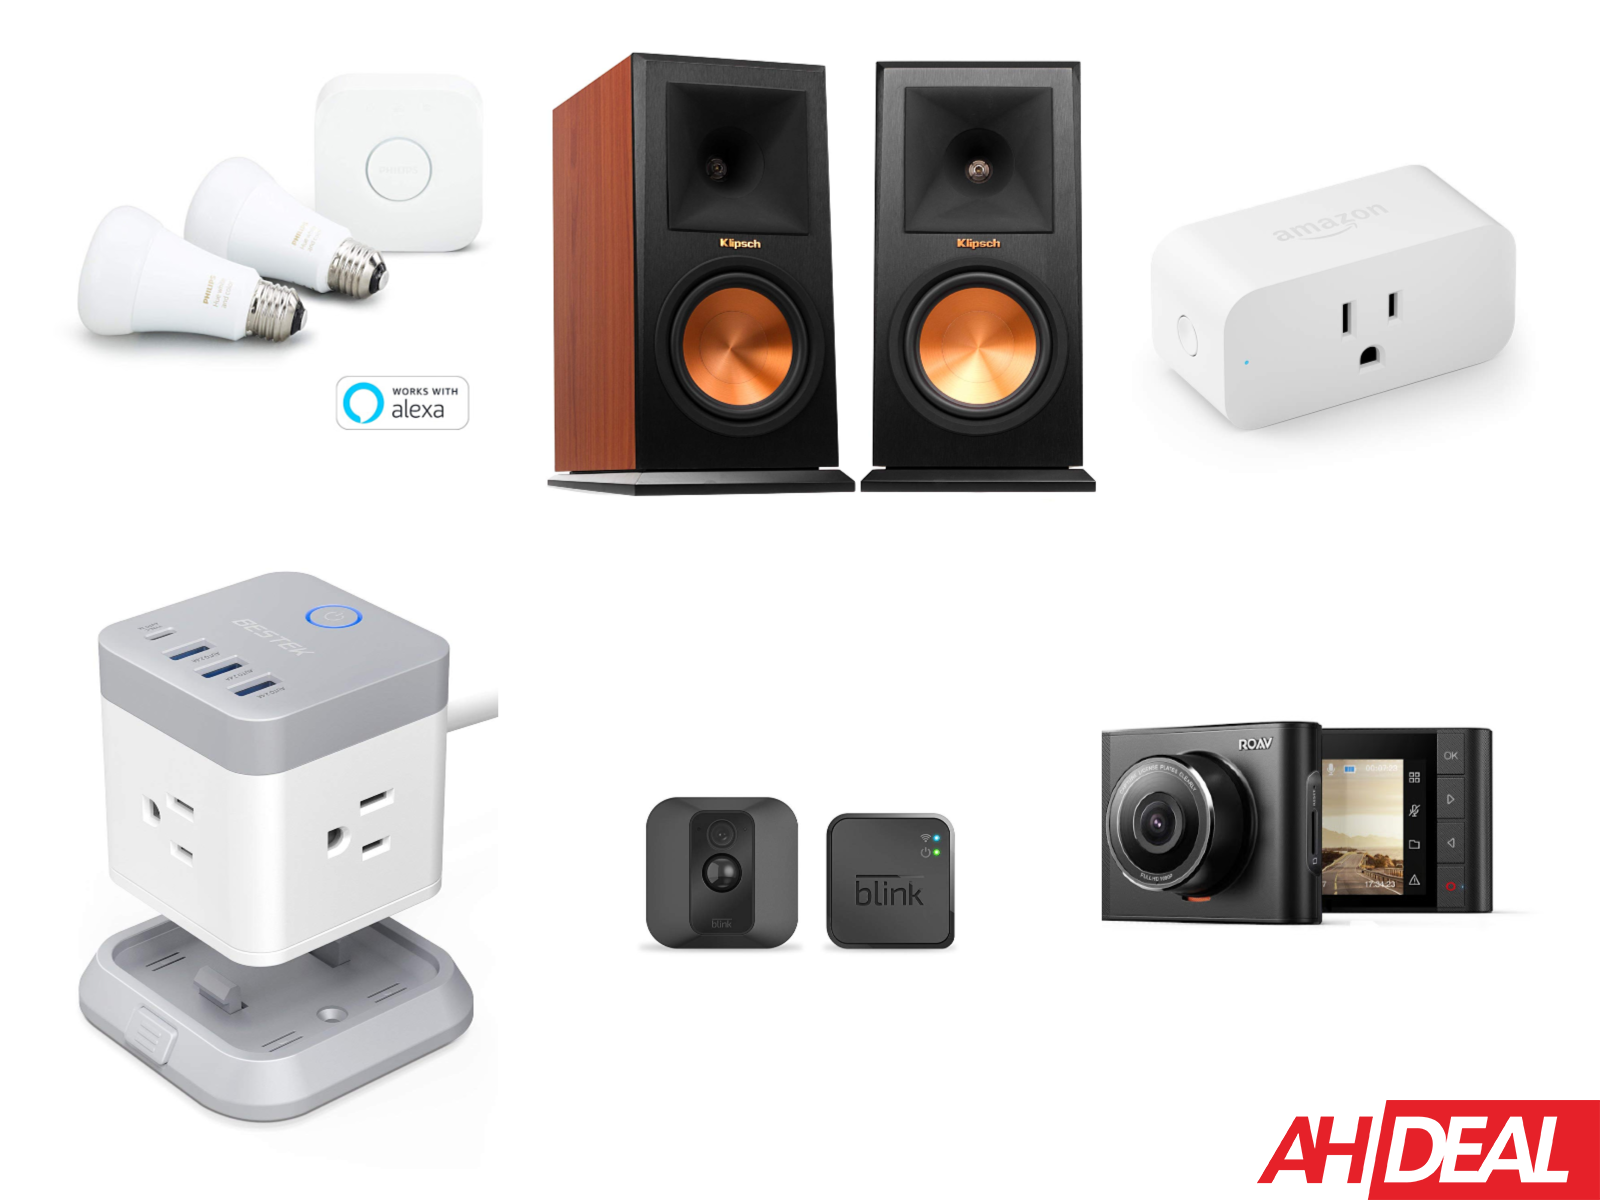 Electronics Deals October 31, 2018 Klipsch, Blink